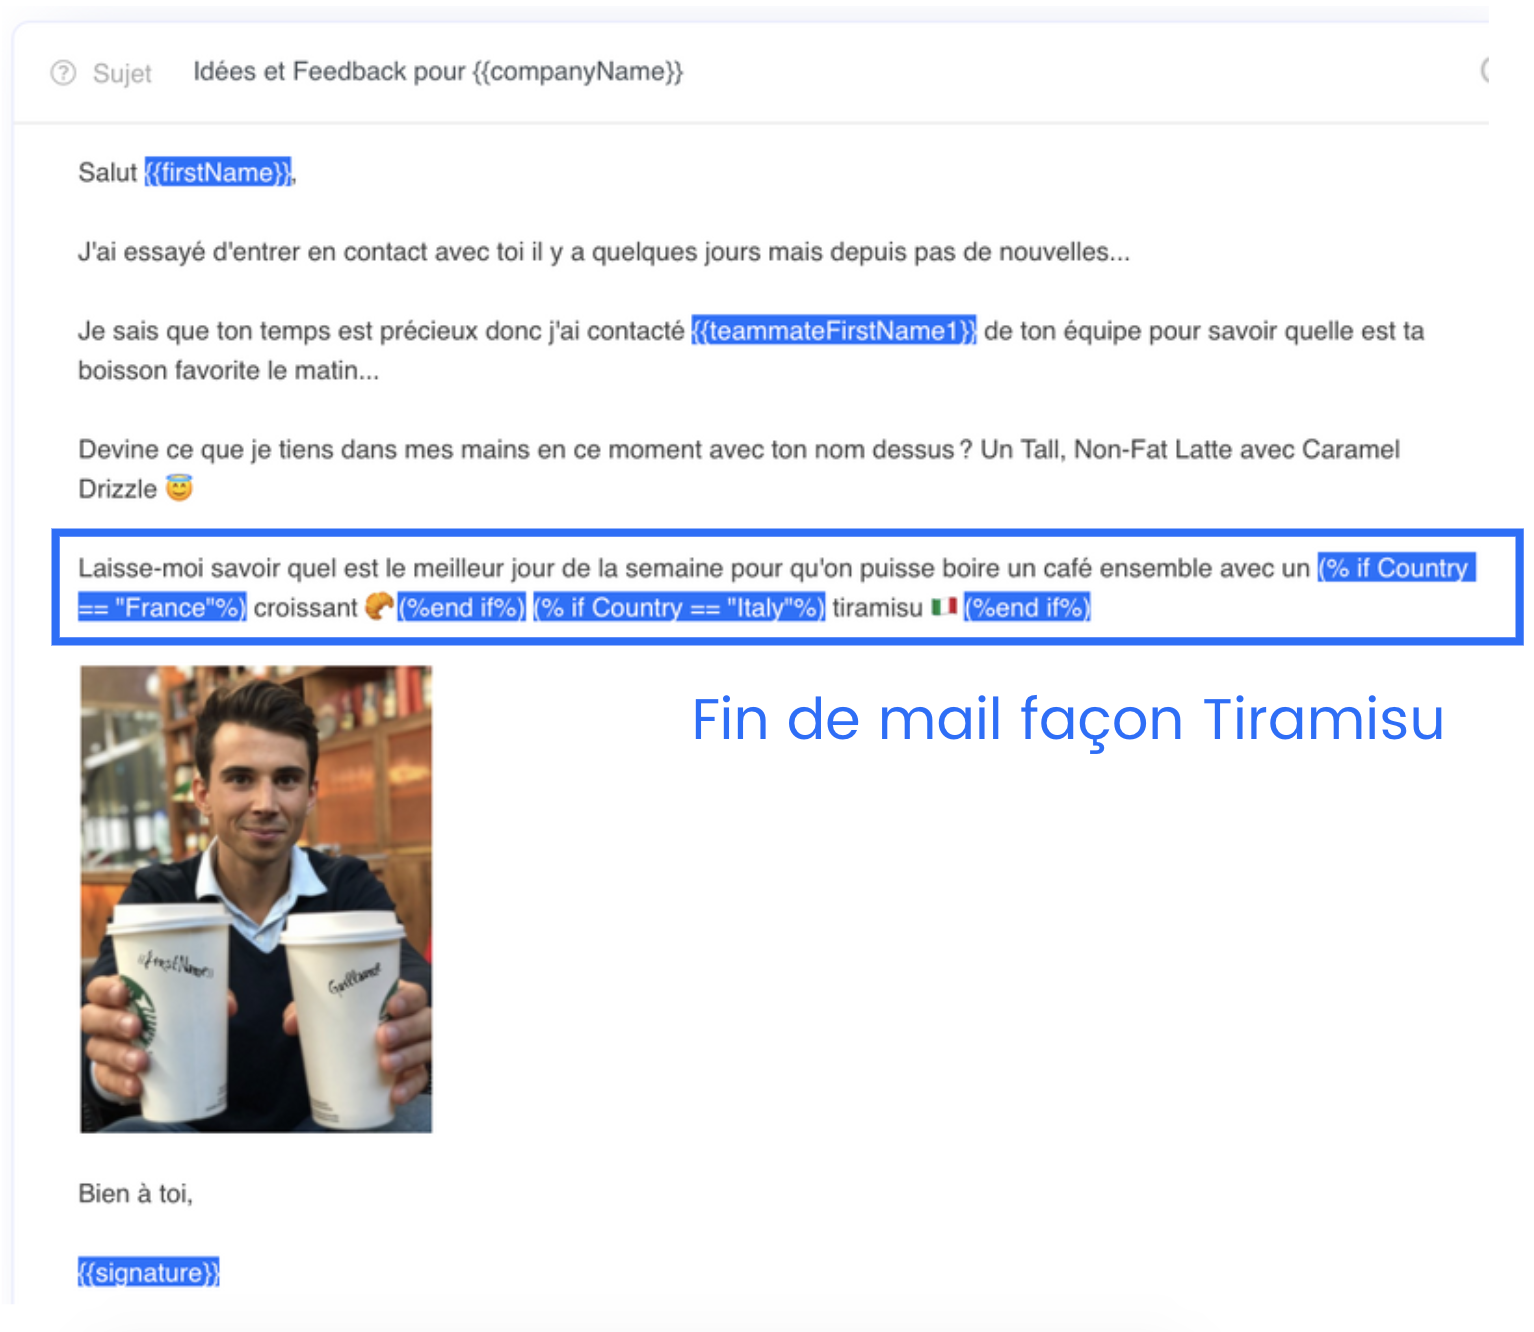 fin cold email efficace